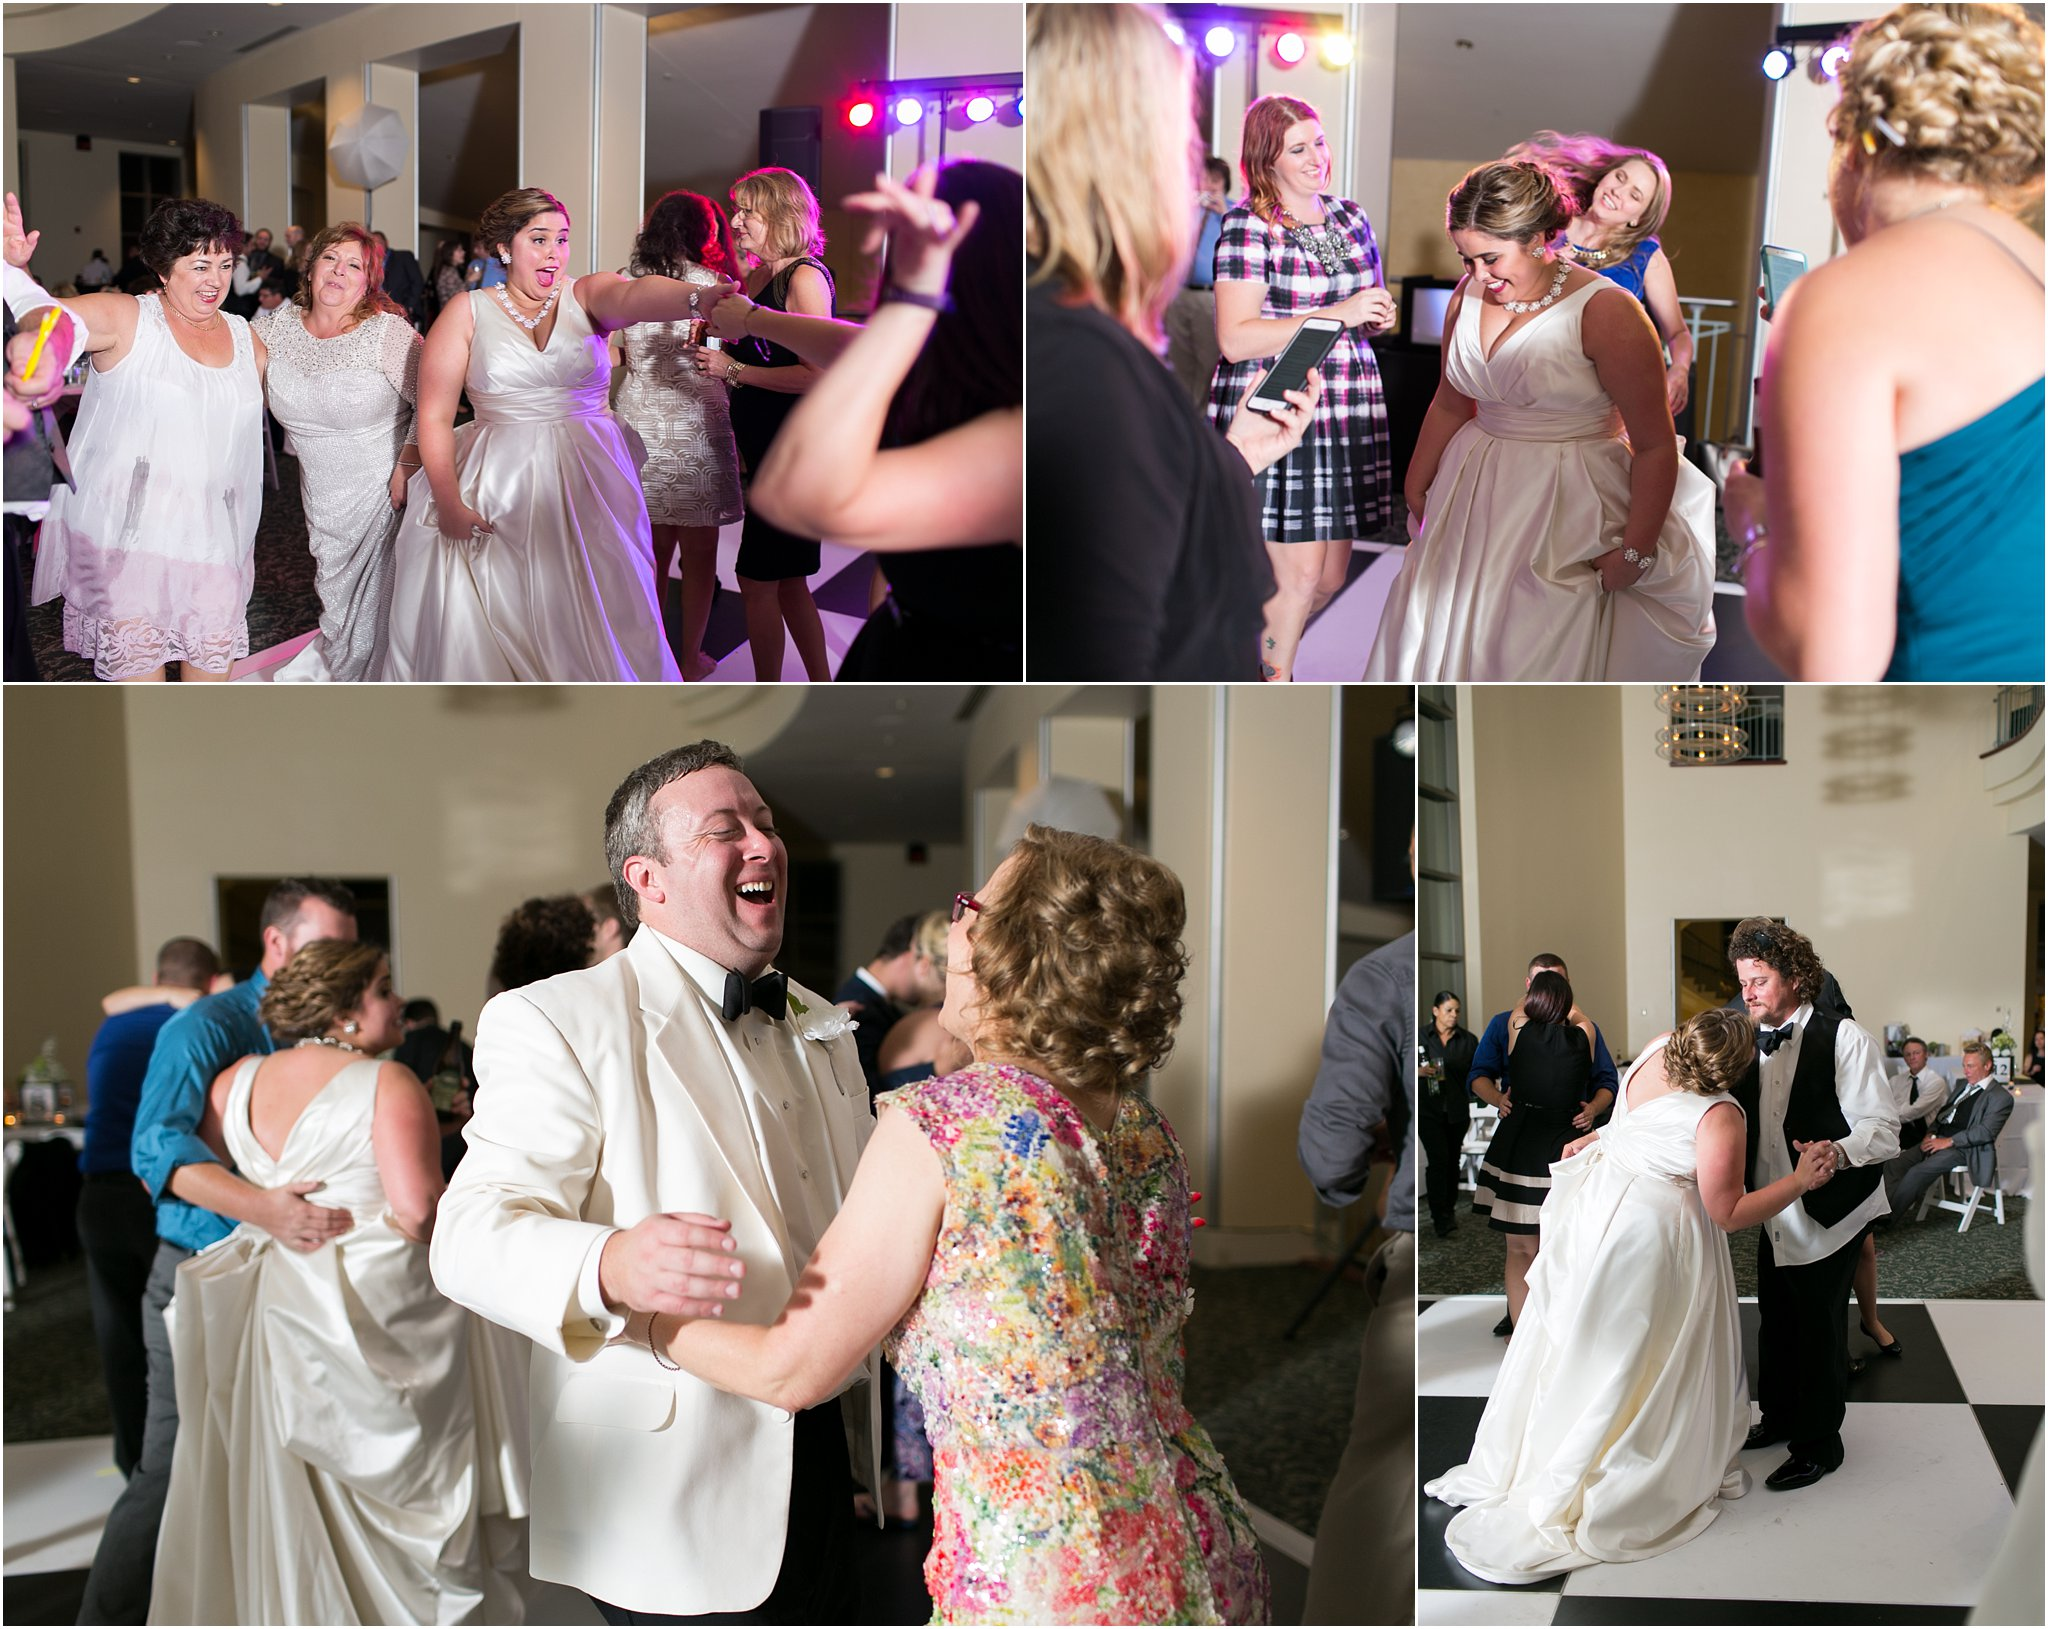 va_jessica_ryan_photography_virginia_wedding_norfolk_harrison_opera_house_norfolk_arts_district_portraits_3867